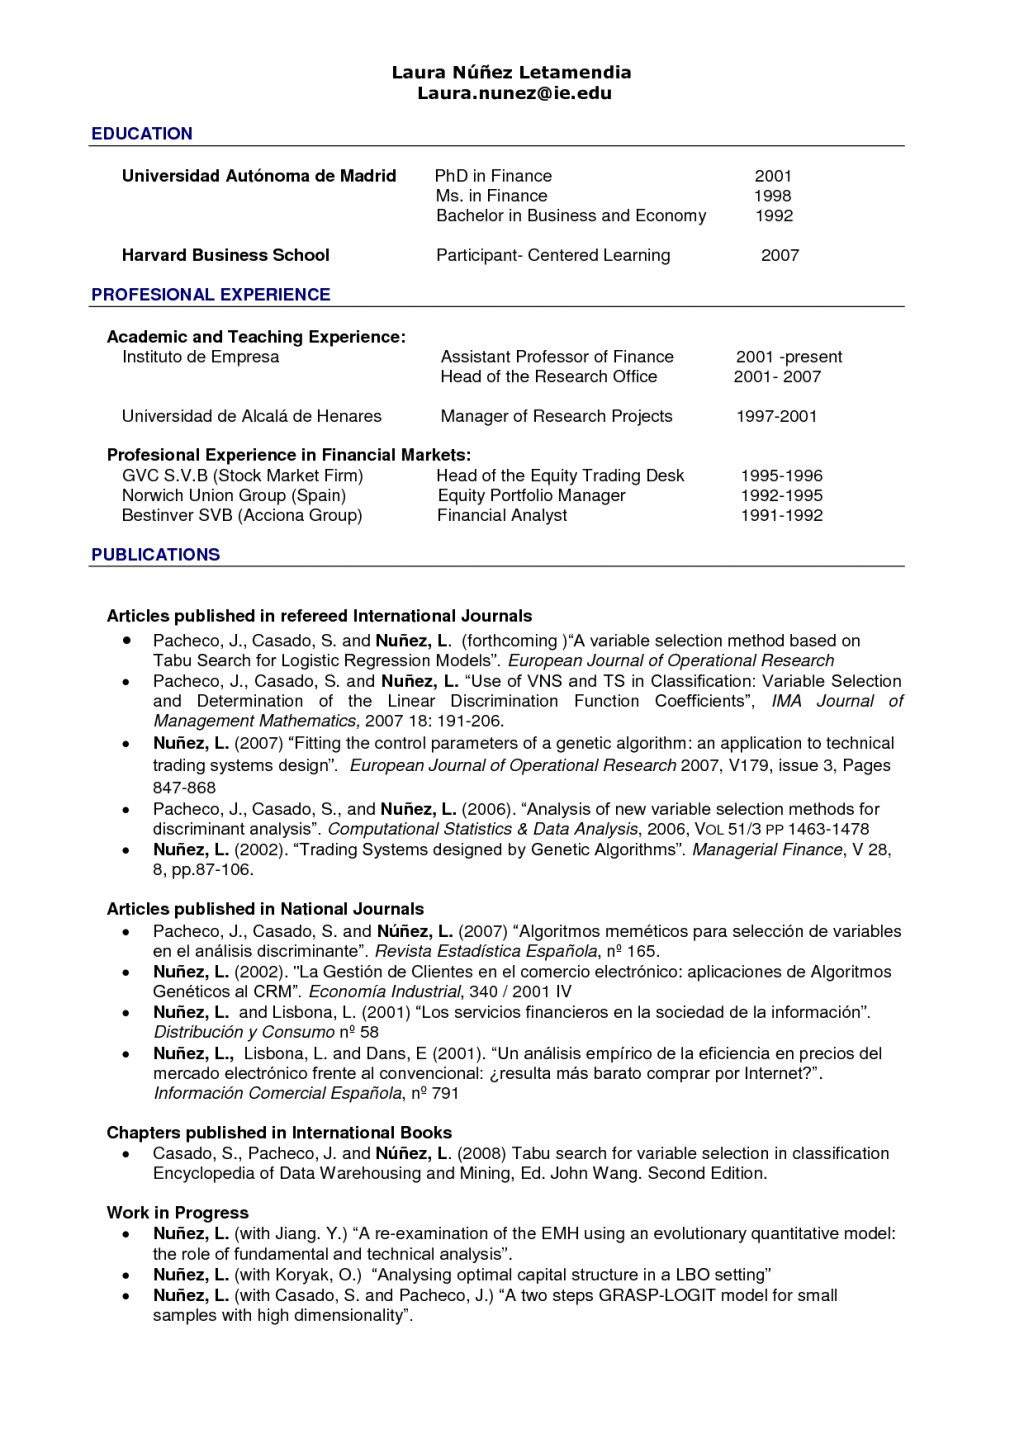 015 Cosy Harvard Mba Resume Format For Hbs Essays Business School Application Essay Questions Mad Tips Successfuls Sample Length Formidable Question 2018 Large